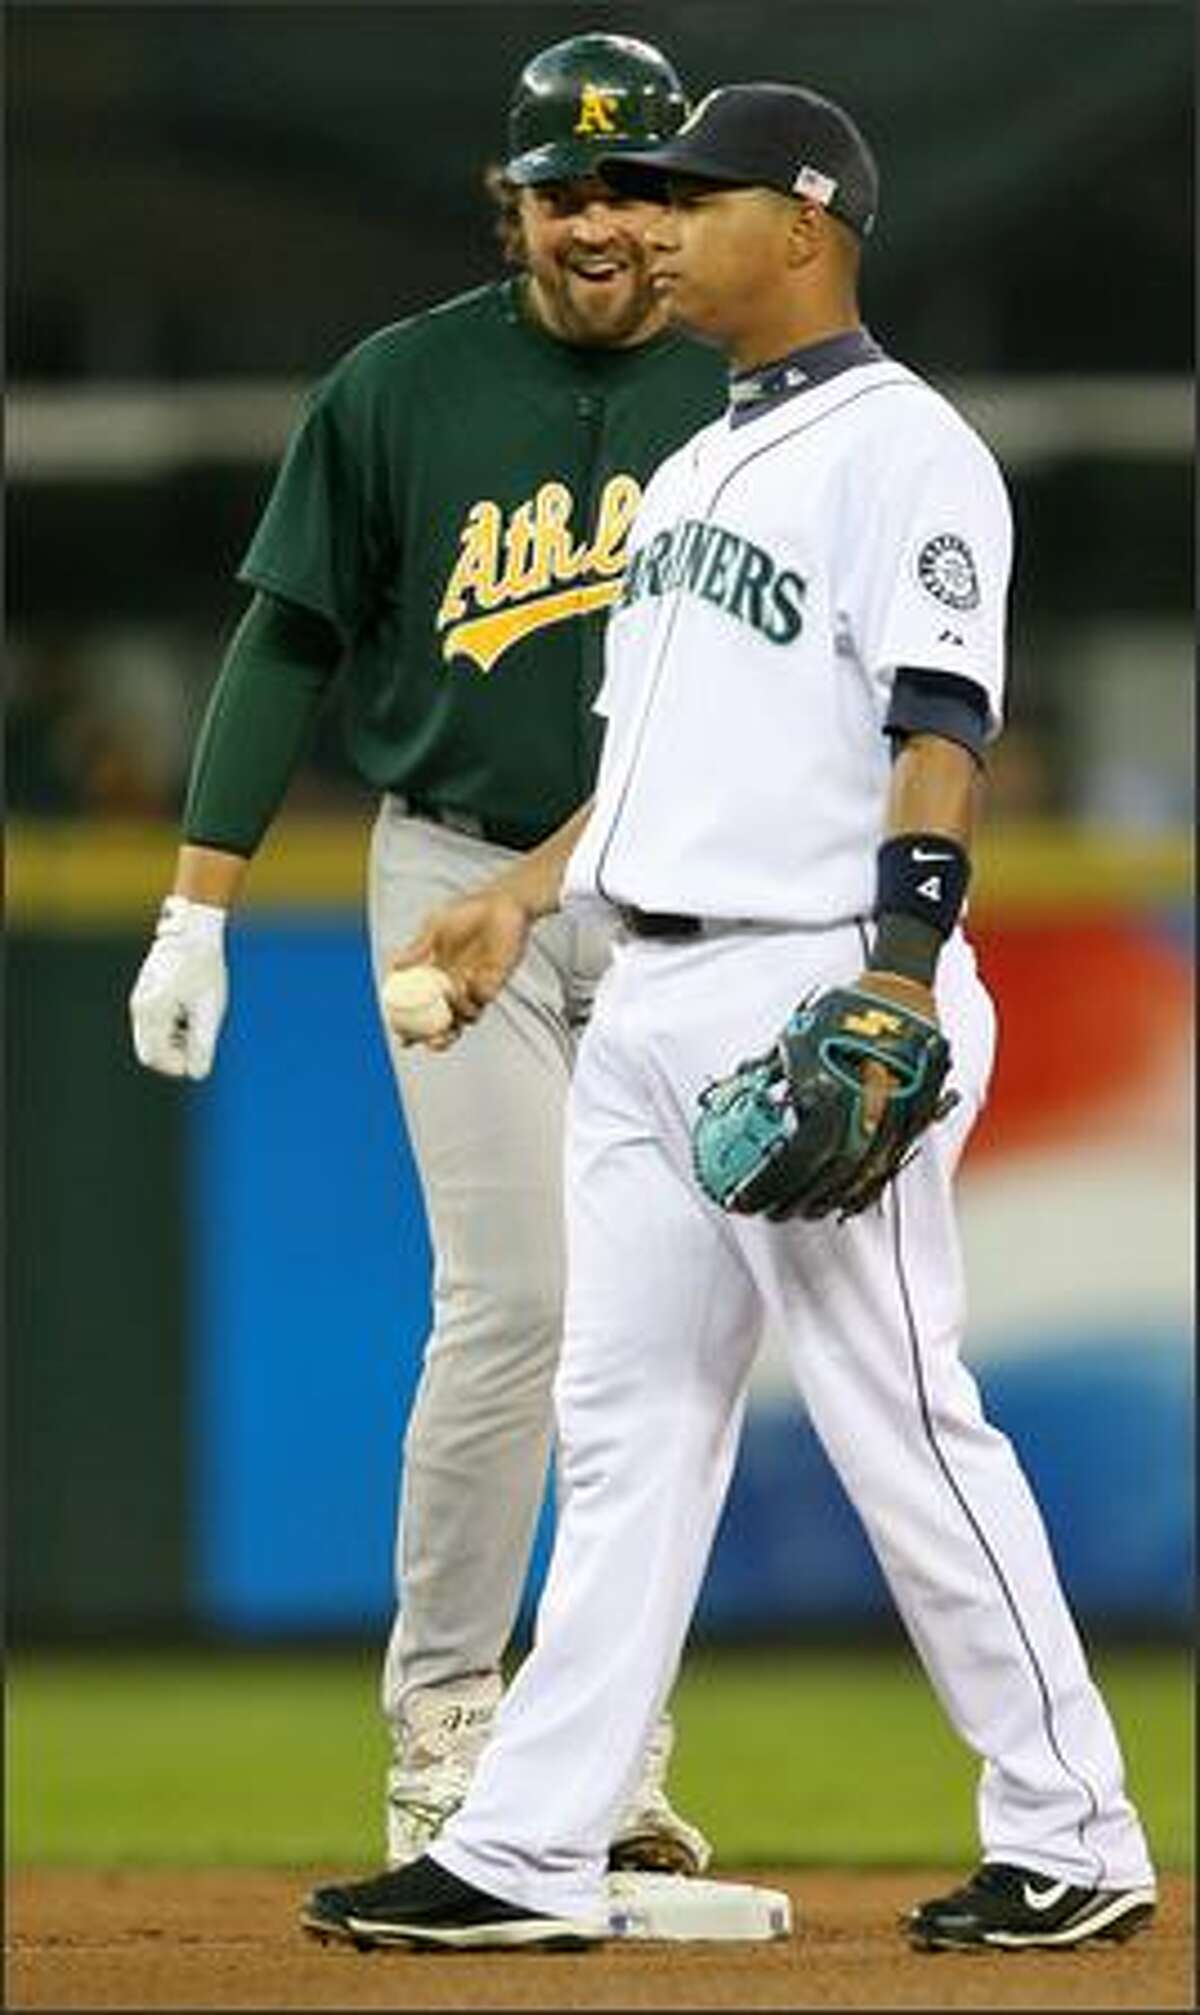 Oakland Athletics Mike Piazza smiles at an unimpressed Jose Lopez after hitting a double to center field during second inning action at Safeco Field.